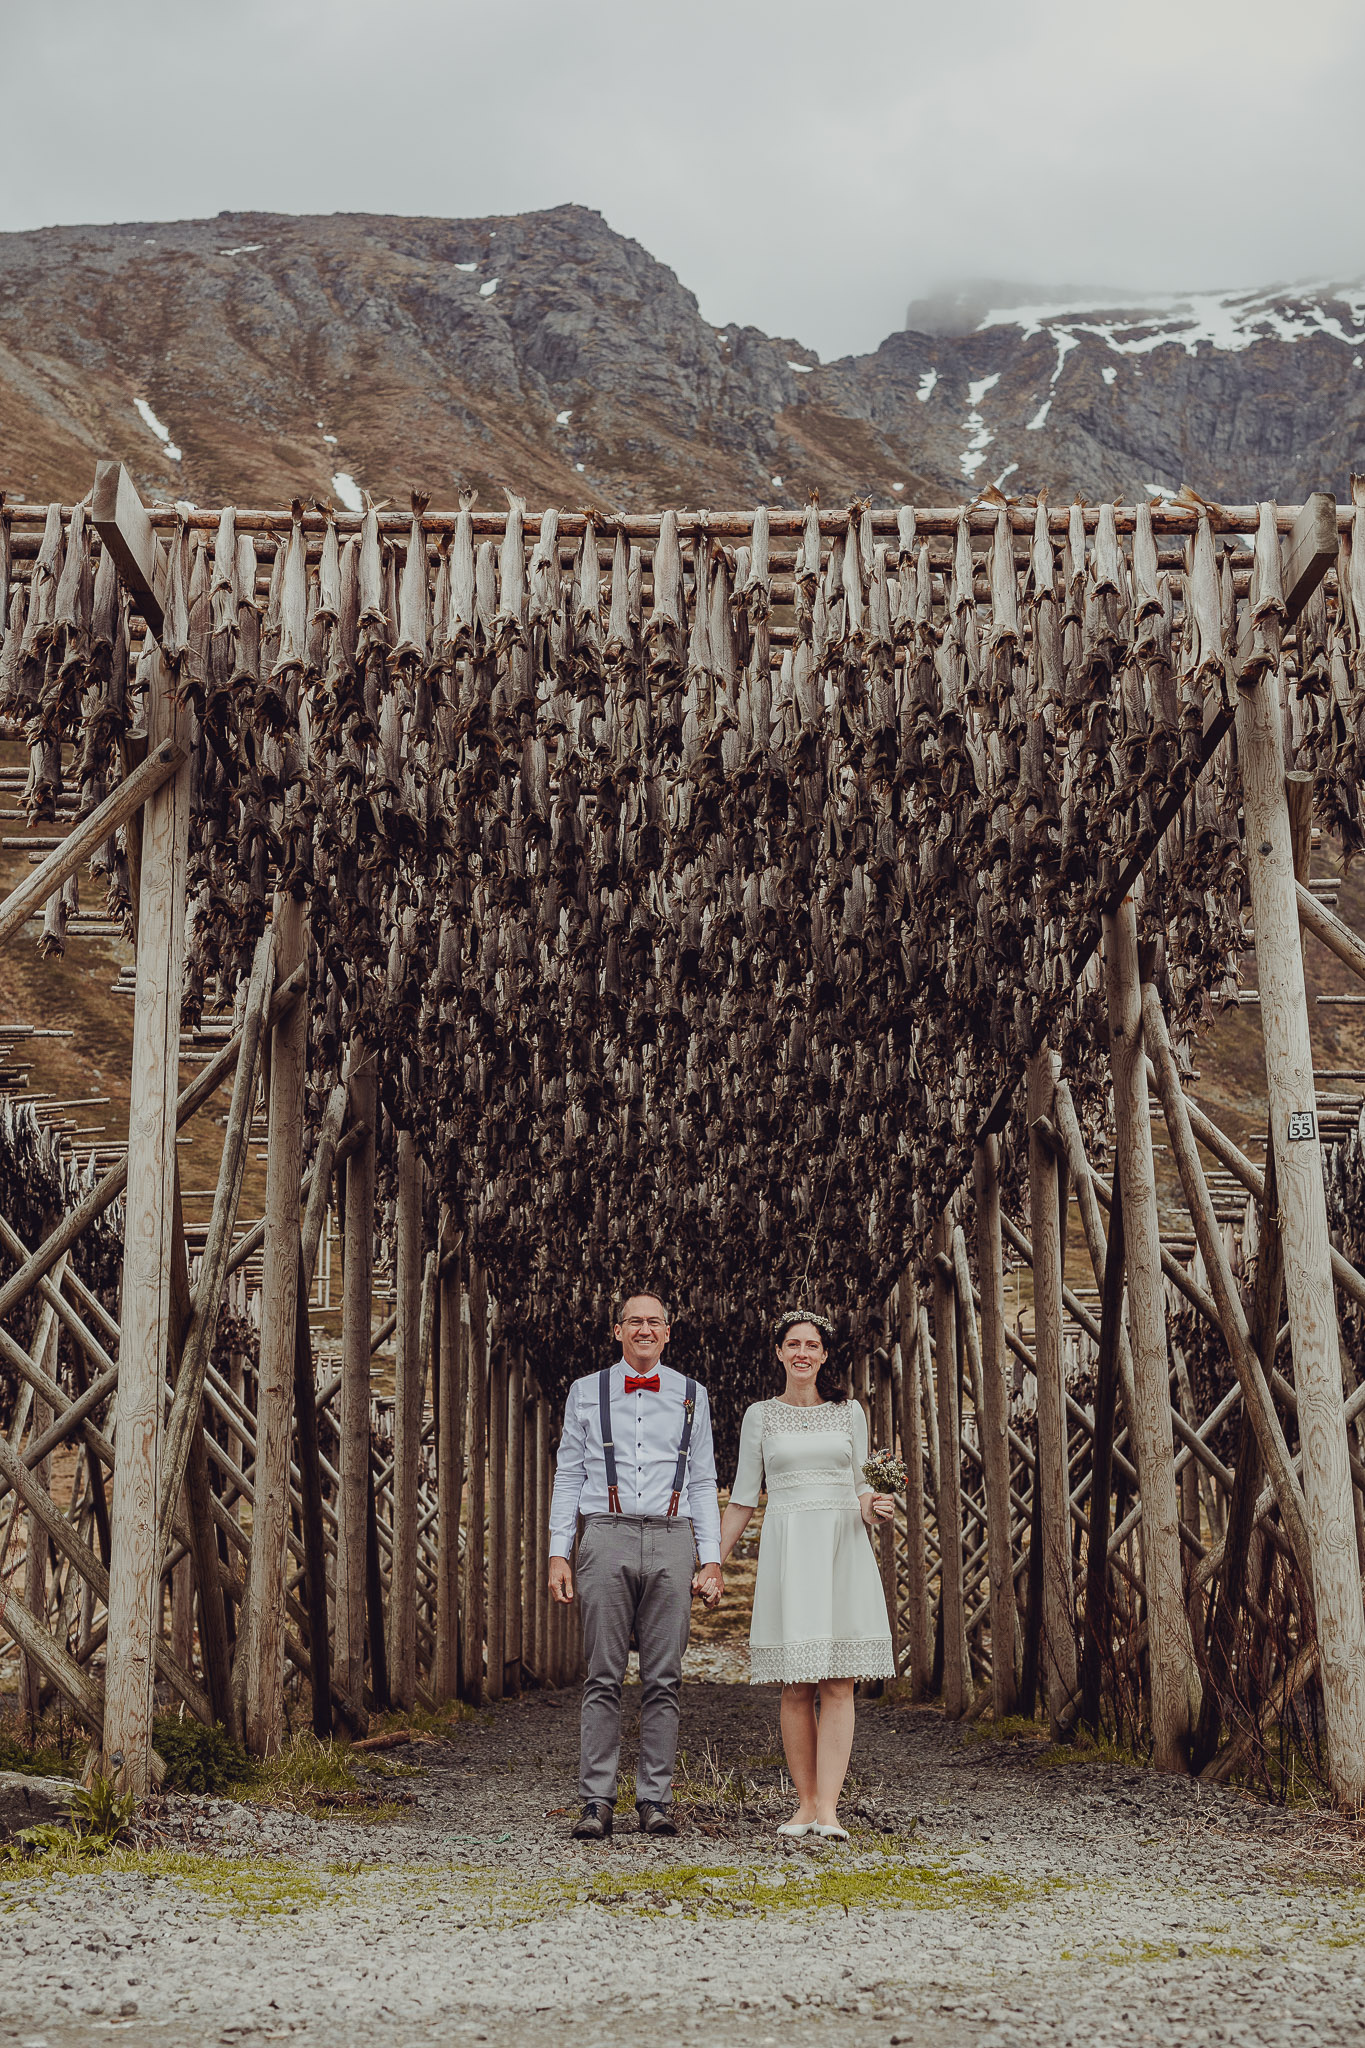 Lofoten-elopement-wedding-photography-38